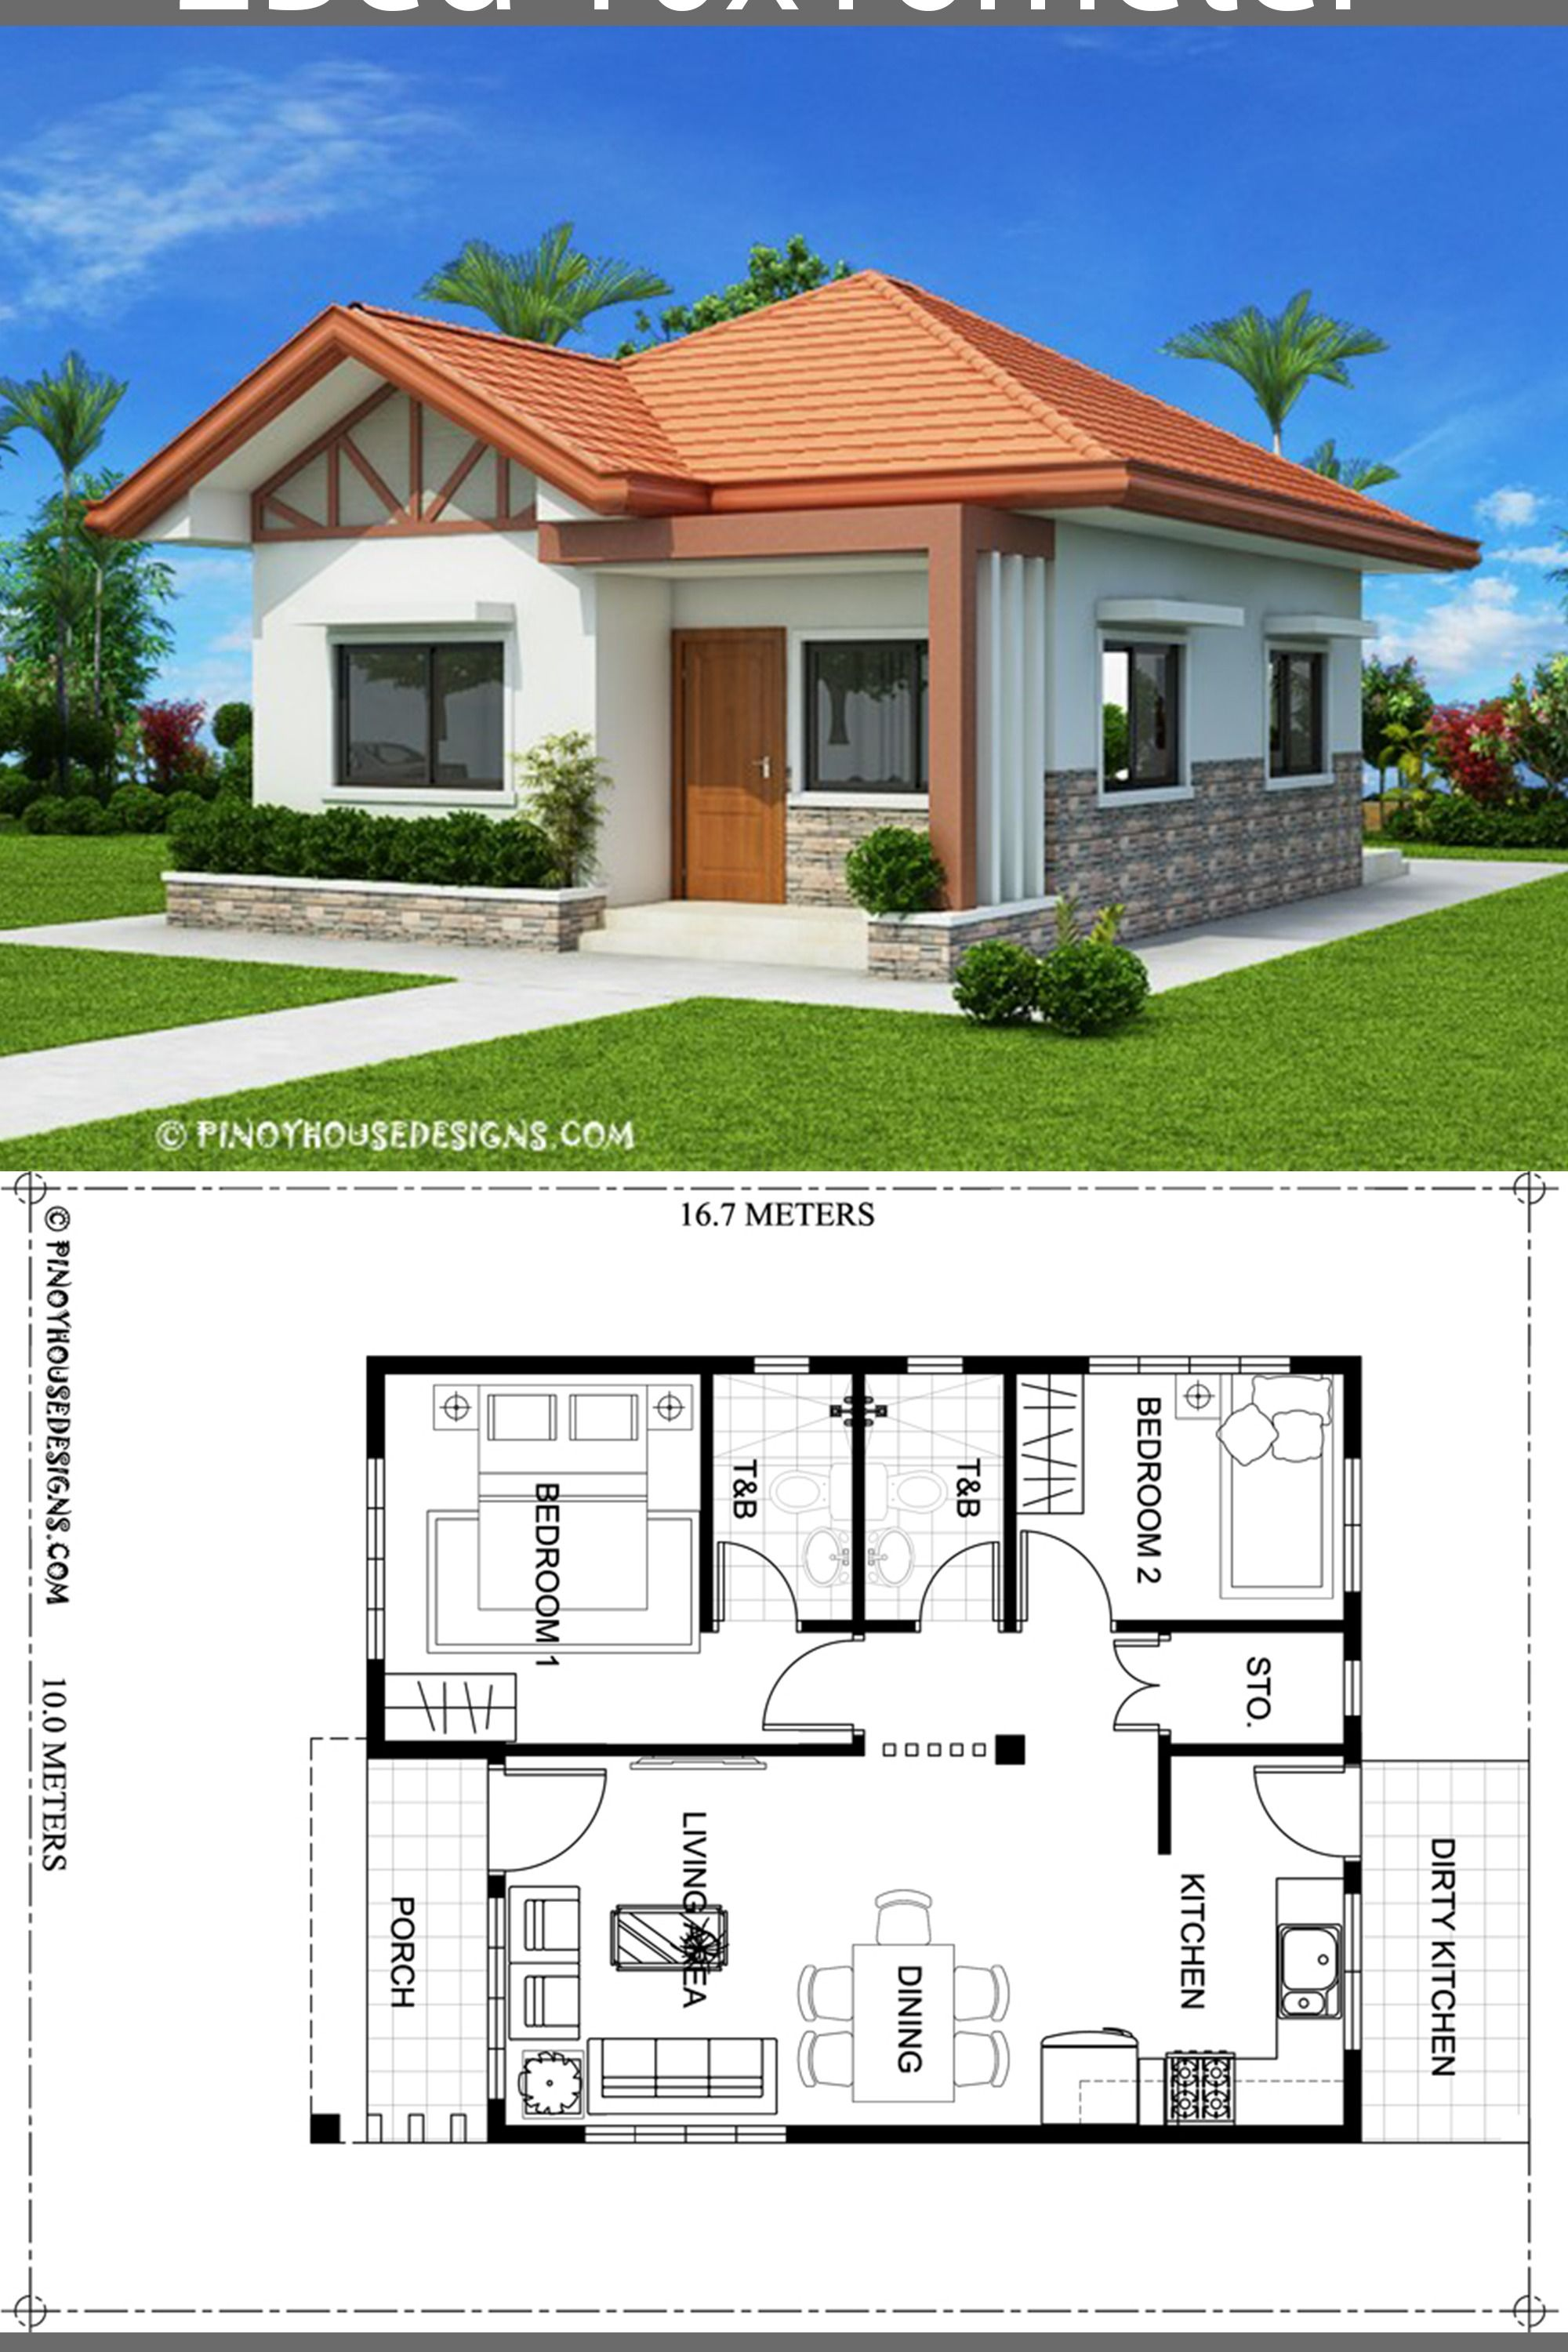 Pin By Mohammed Ali On House And Wood Decoration Affordable House Plans House Plans Small House Design Plans